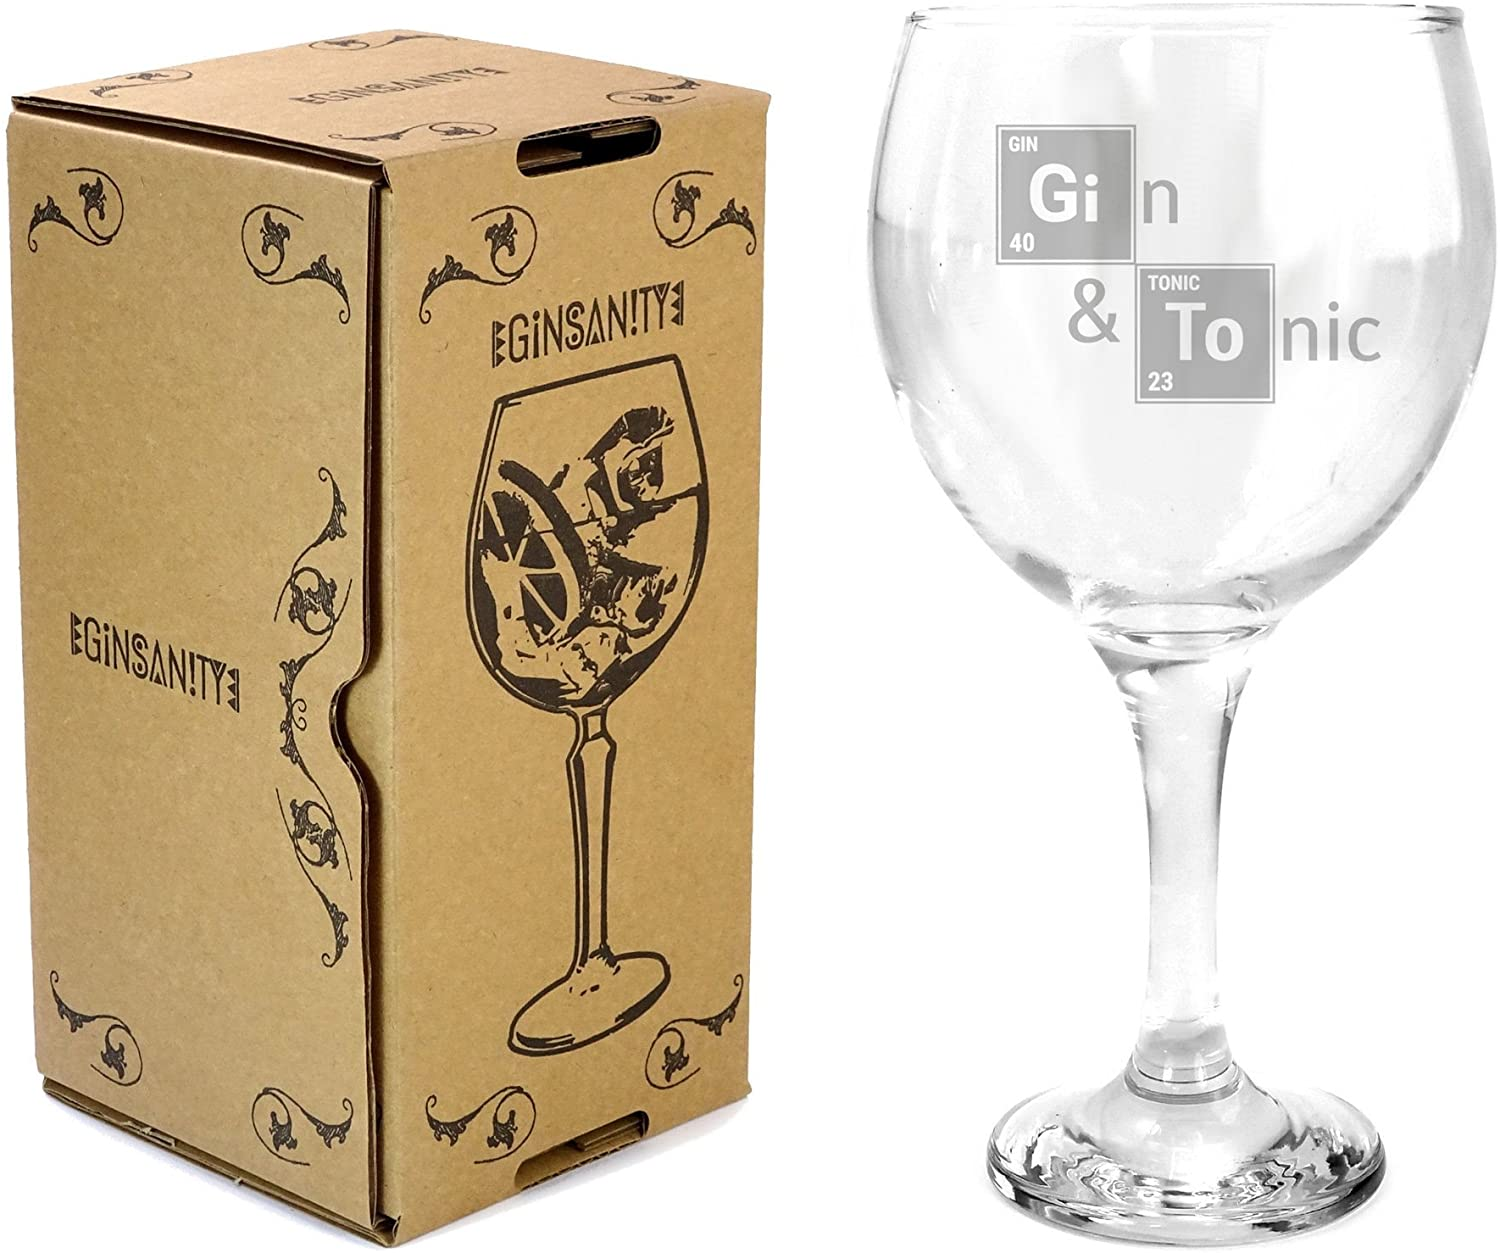 Ginsanity 22oz (645ml) Gin & Tonic Copa Balloon Cocktail Glass & Giftbox - Gin & Tonic Essential Elements